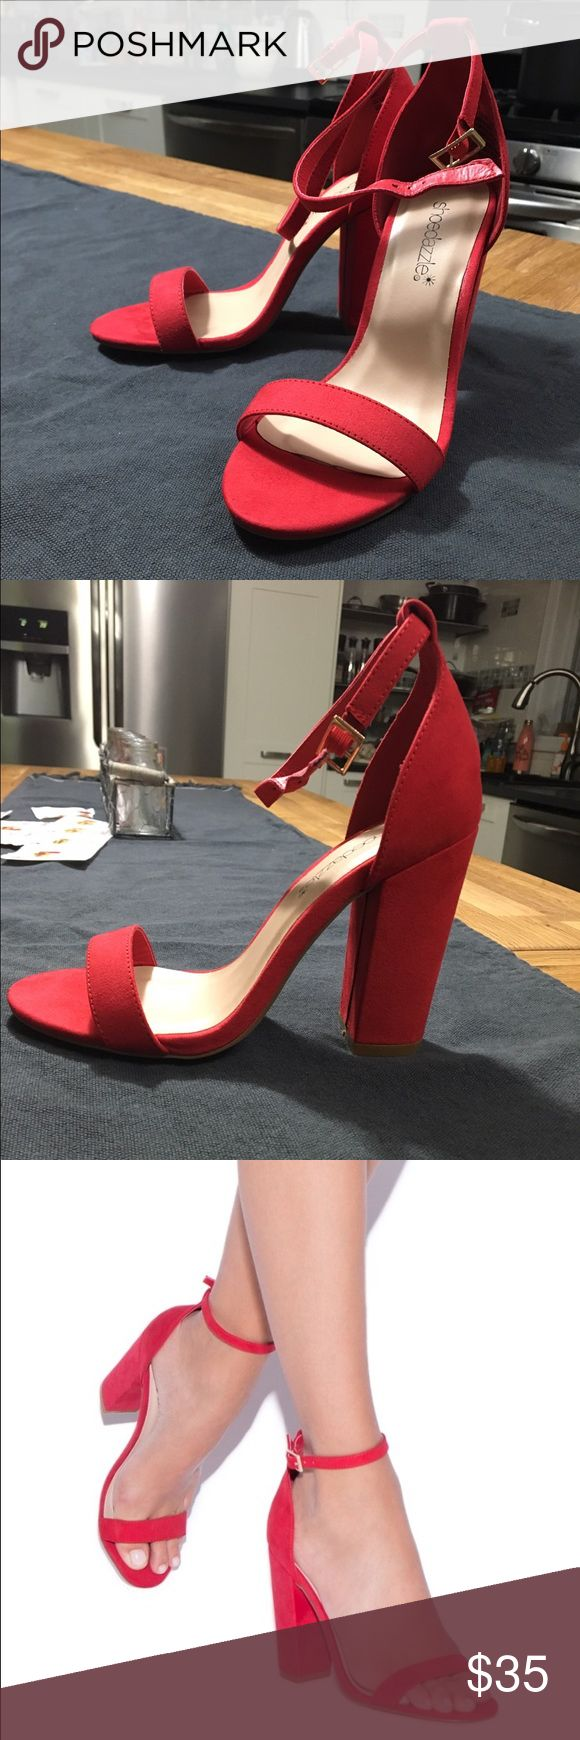 Red Heeled Sandals- Shoe Dazzle Red, faux suede, heeled sandals from Shoe Dazzle; never worn Shoe Dazzle Shoes Heels